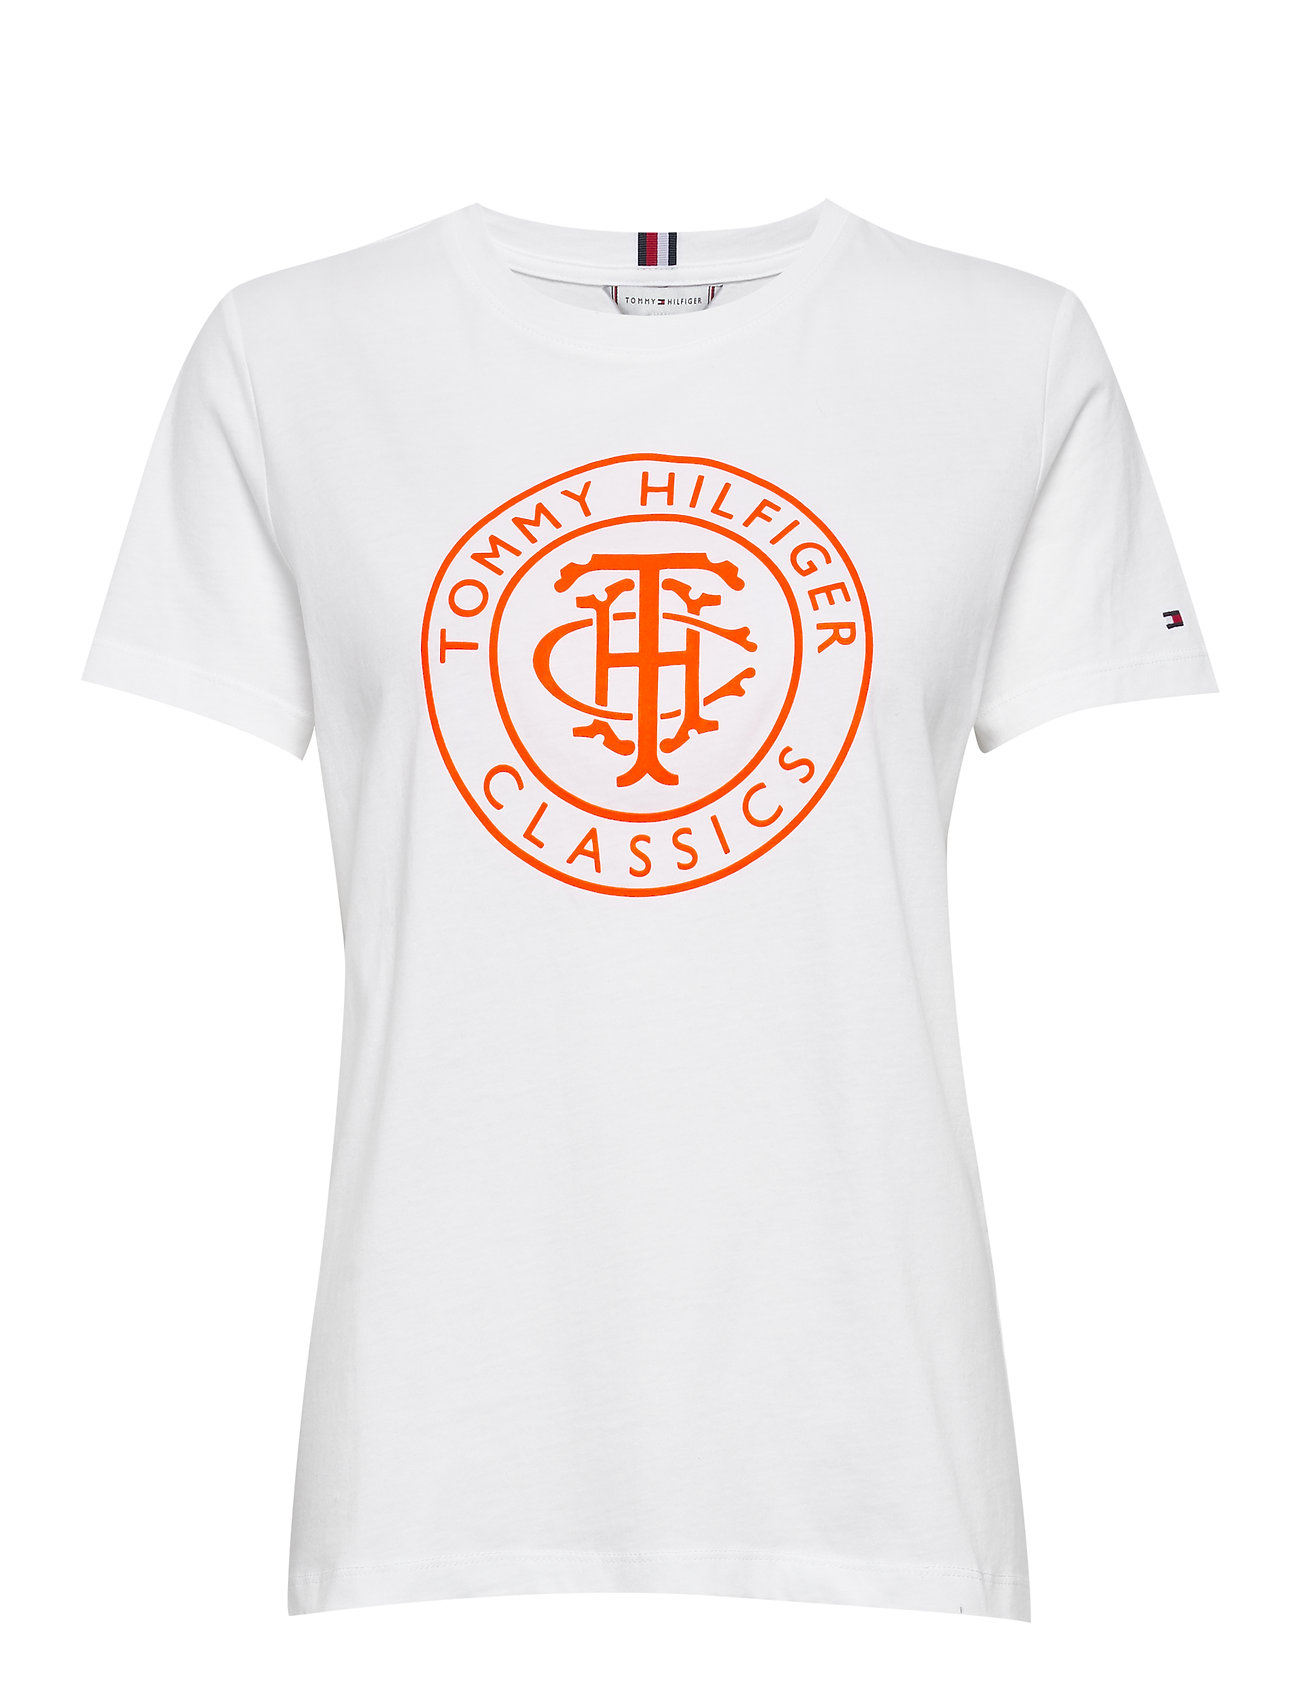 Tommy Hilfiger TH COOL ESS RELAXED GRAPHIC TEE - WHITE